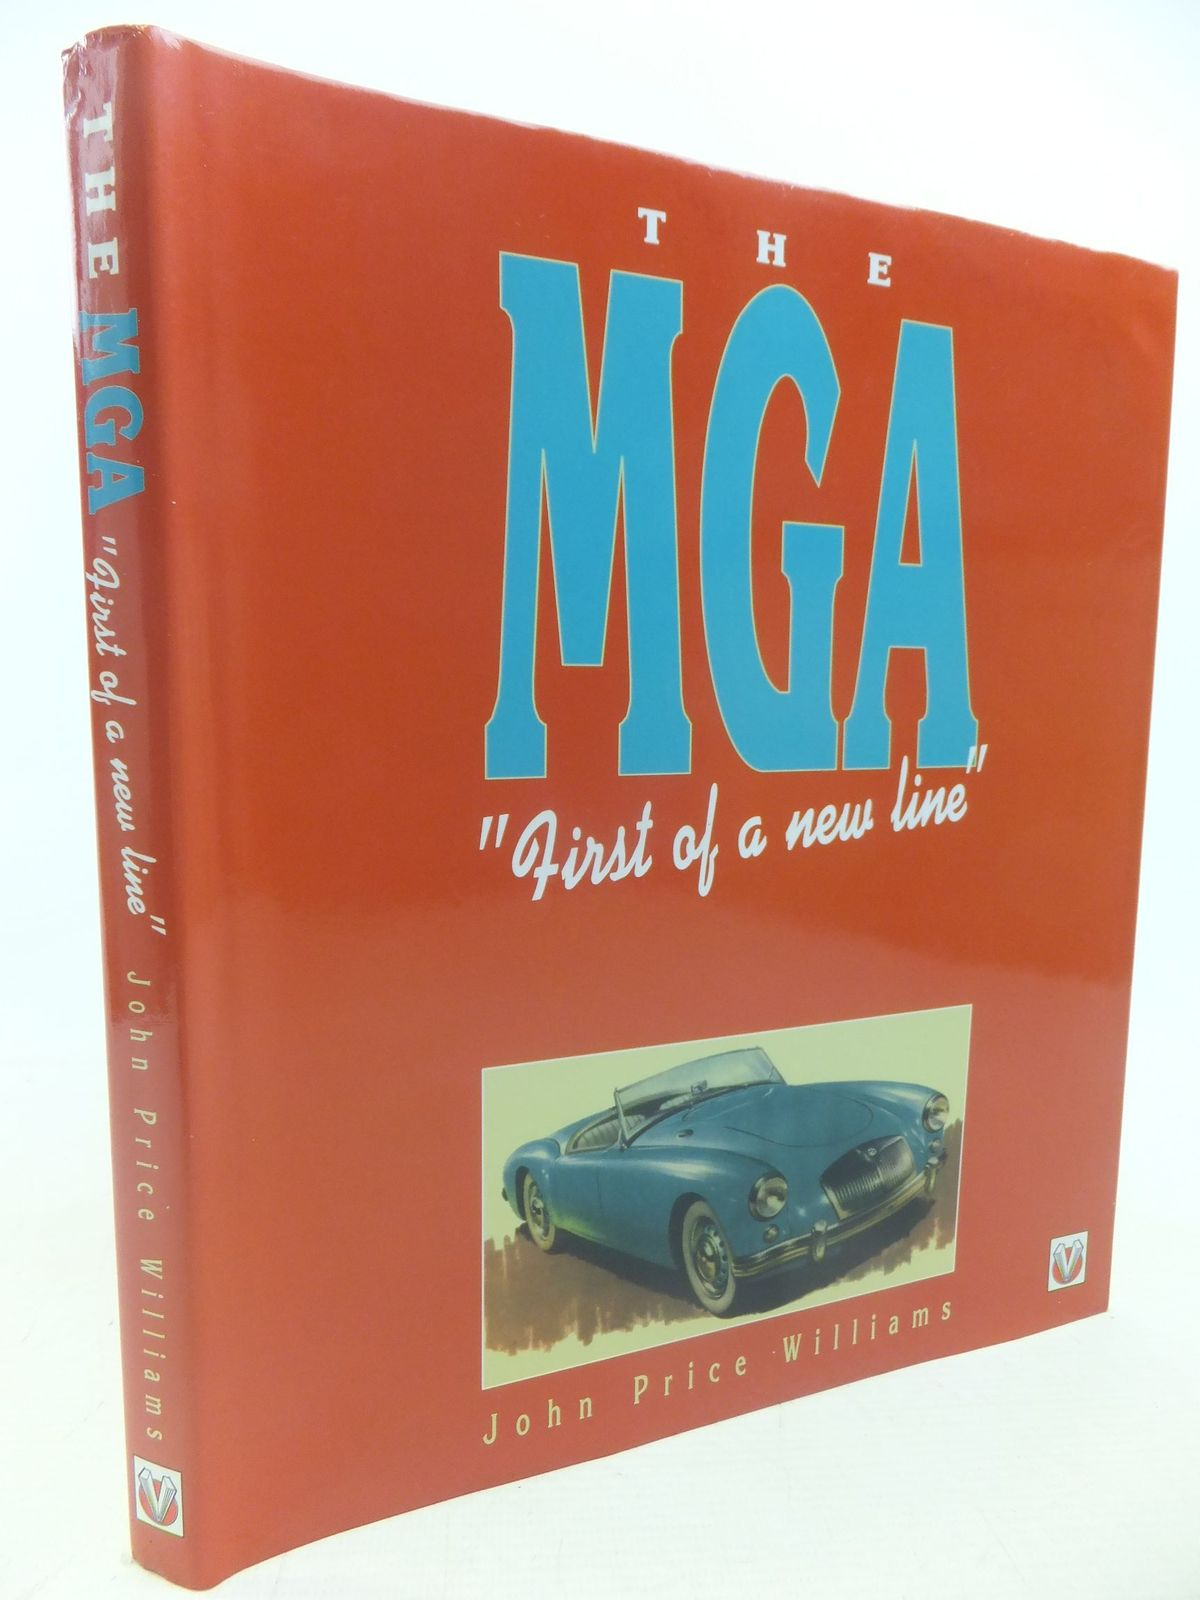 Photo of THE MGA 'FIRST OF A NEW LINE' written by Williams, John Price published by Veloce Publishing Plc. (STOCK CODE: 1712784)  for sale by Stella & Rose's Books